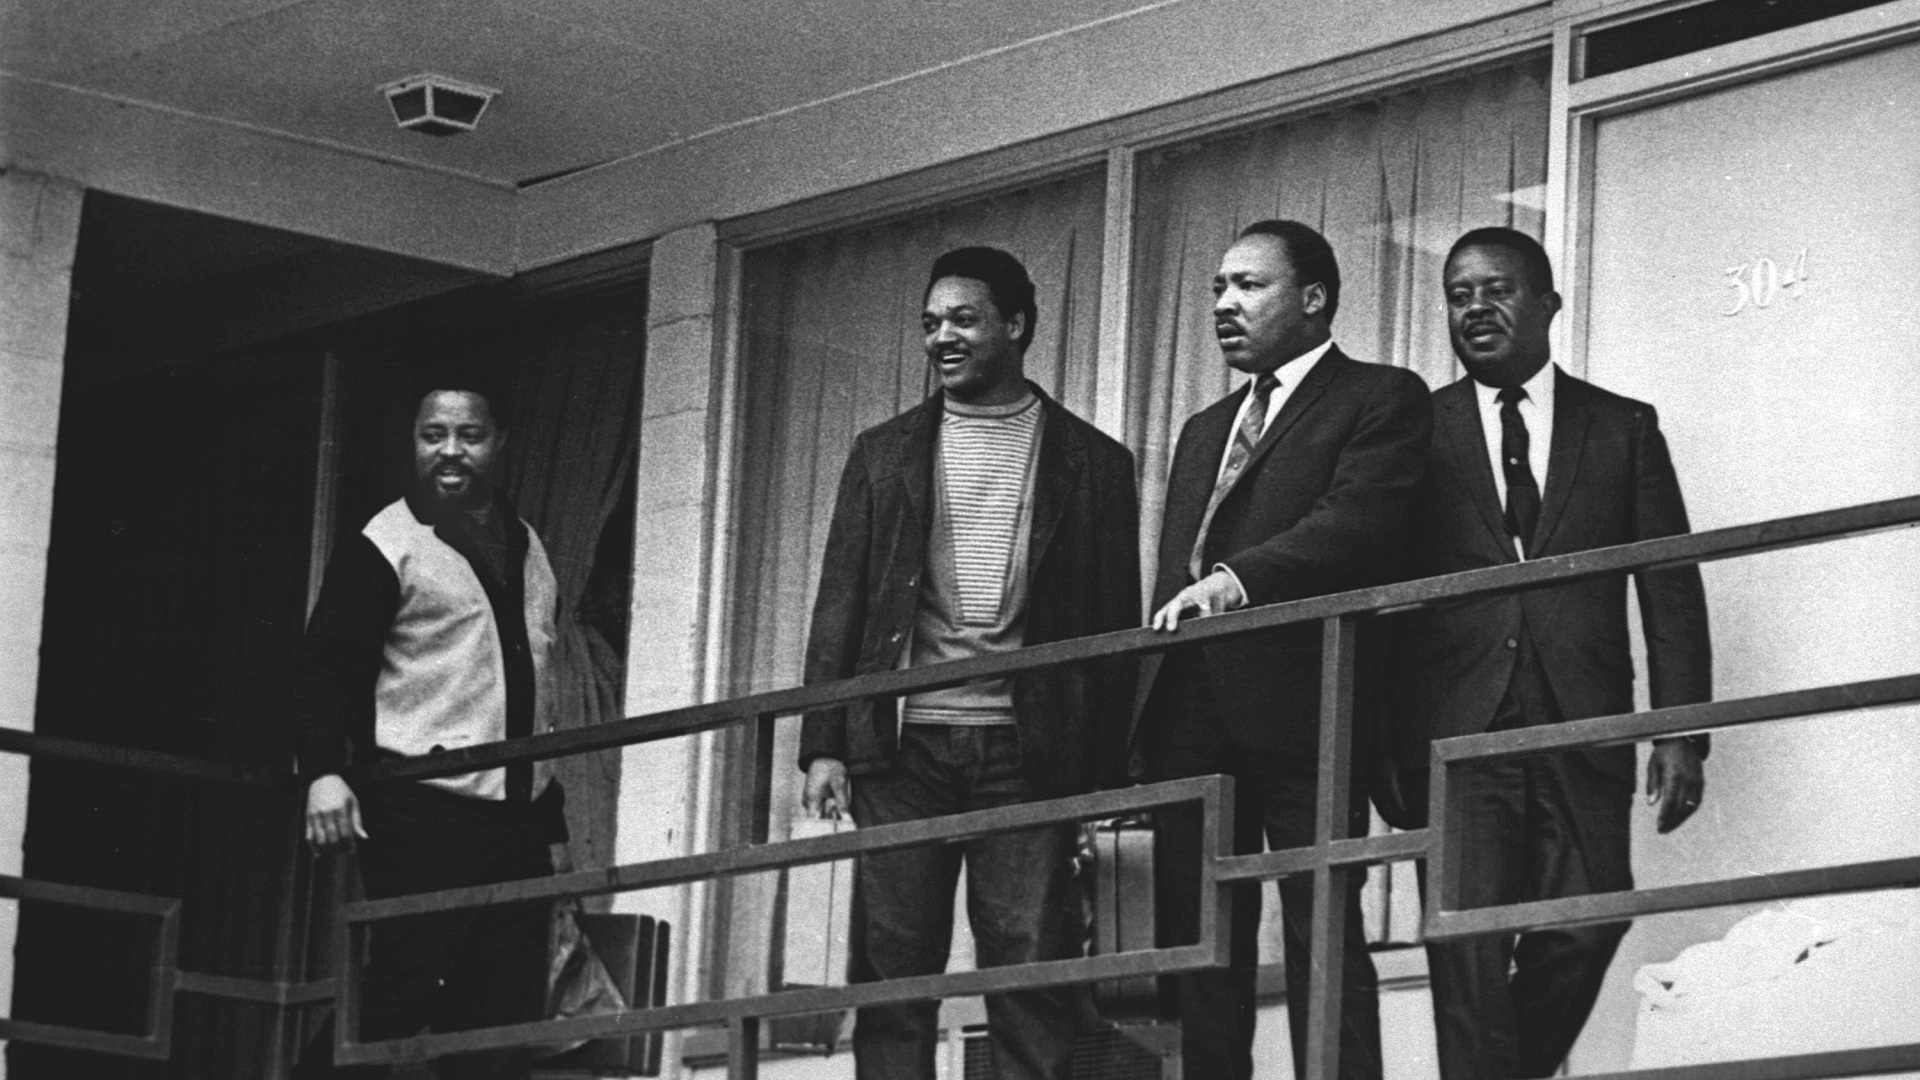 Martin Luther King Jr. standing with other civil rights leaders on the balcony of the Lorraine Motel in Memphis, Tennessee, a day before he was assassinated at approximately the same place in April, 1968. (Credit: Charles Kelly/AP Photo)